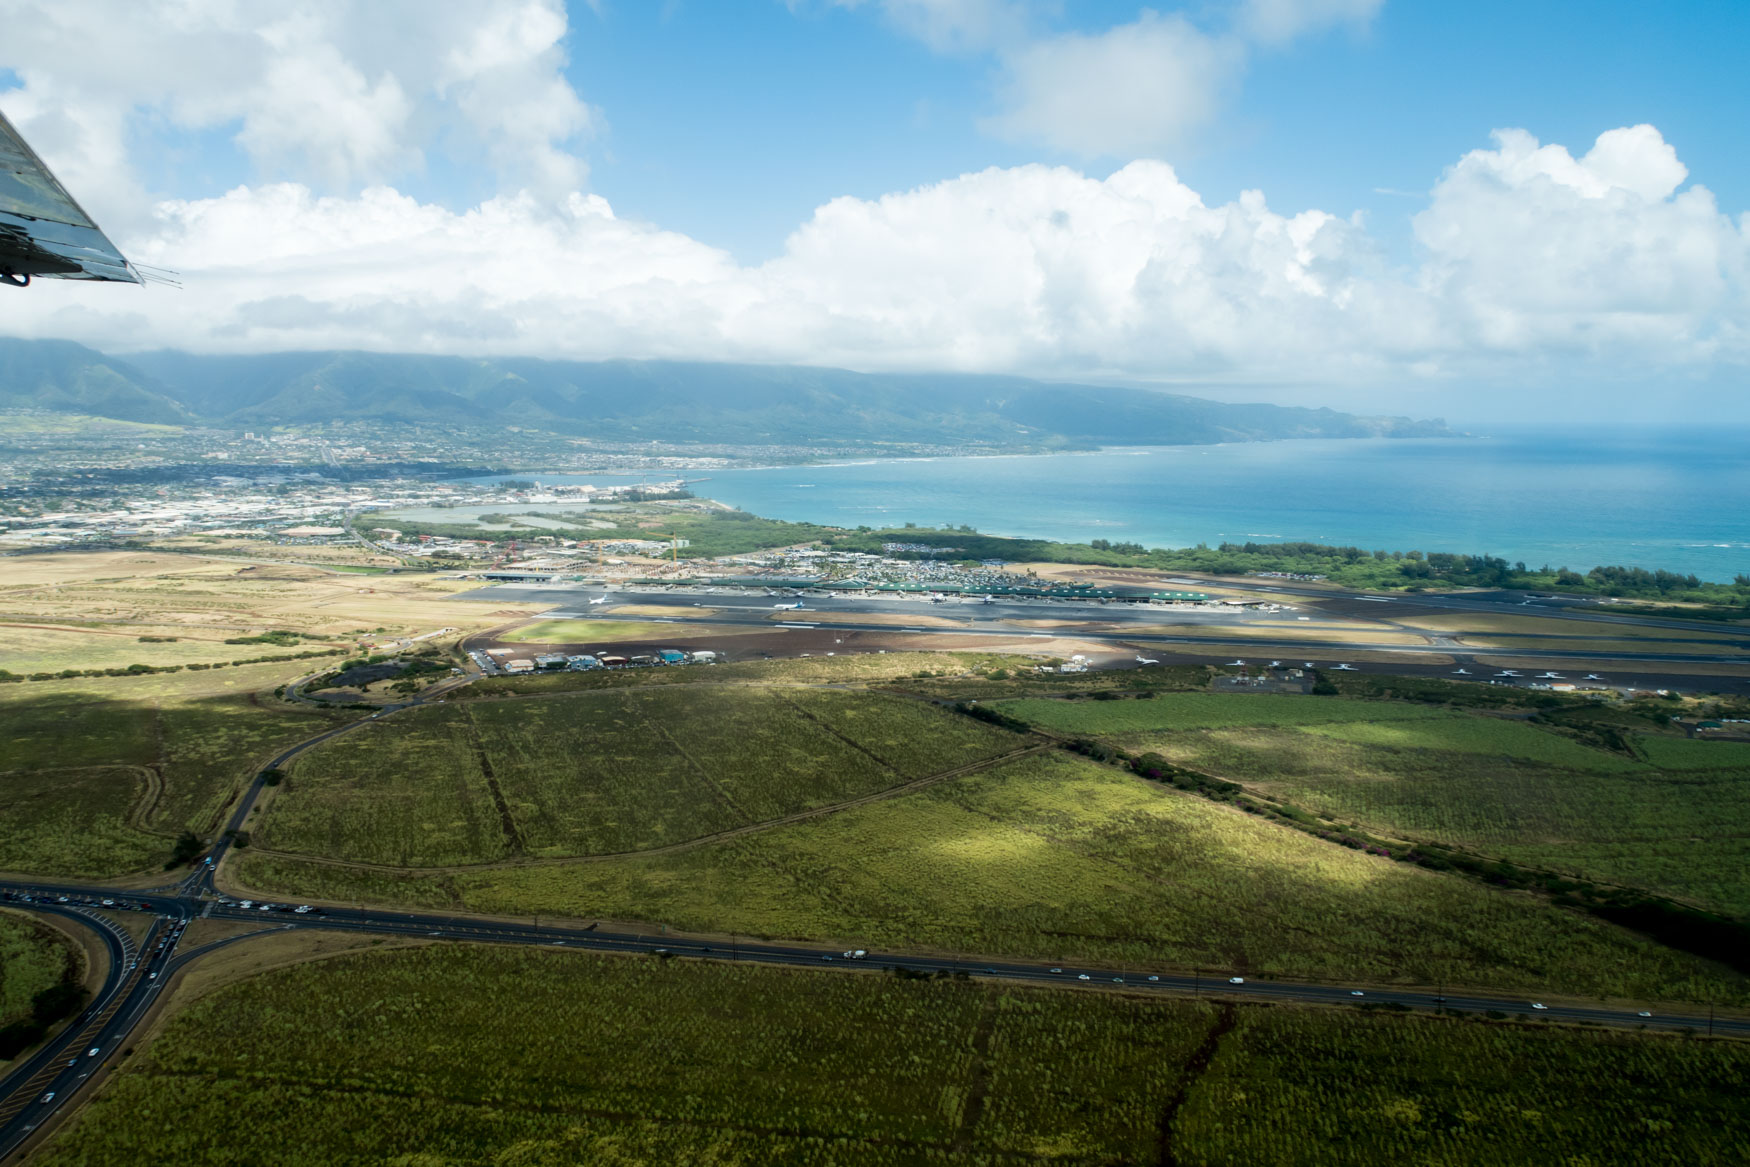 Kahului Airport After Take-Off